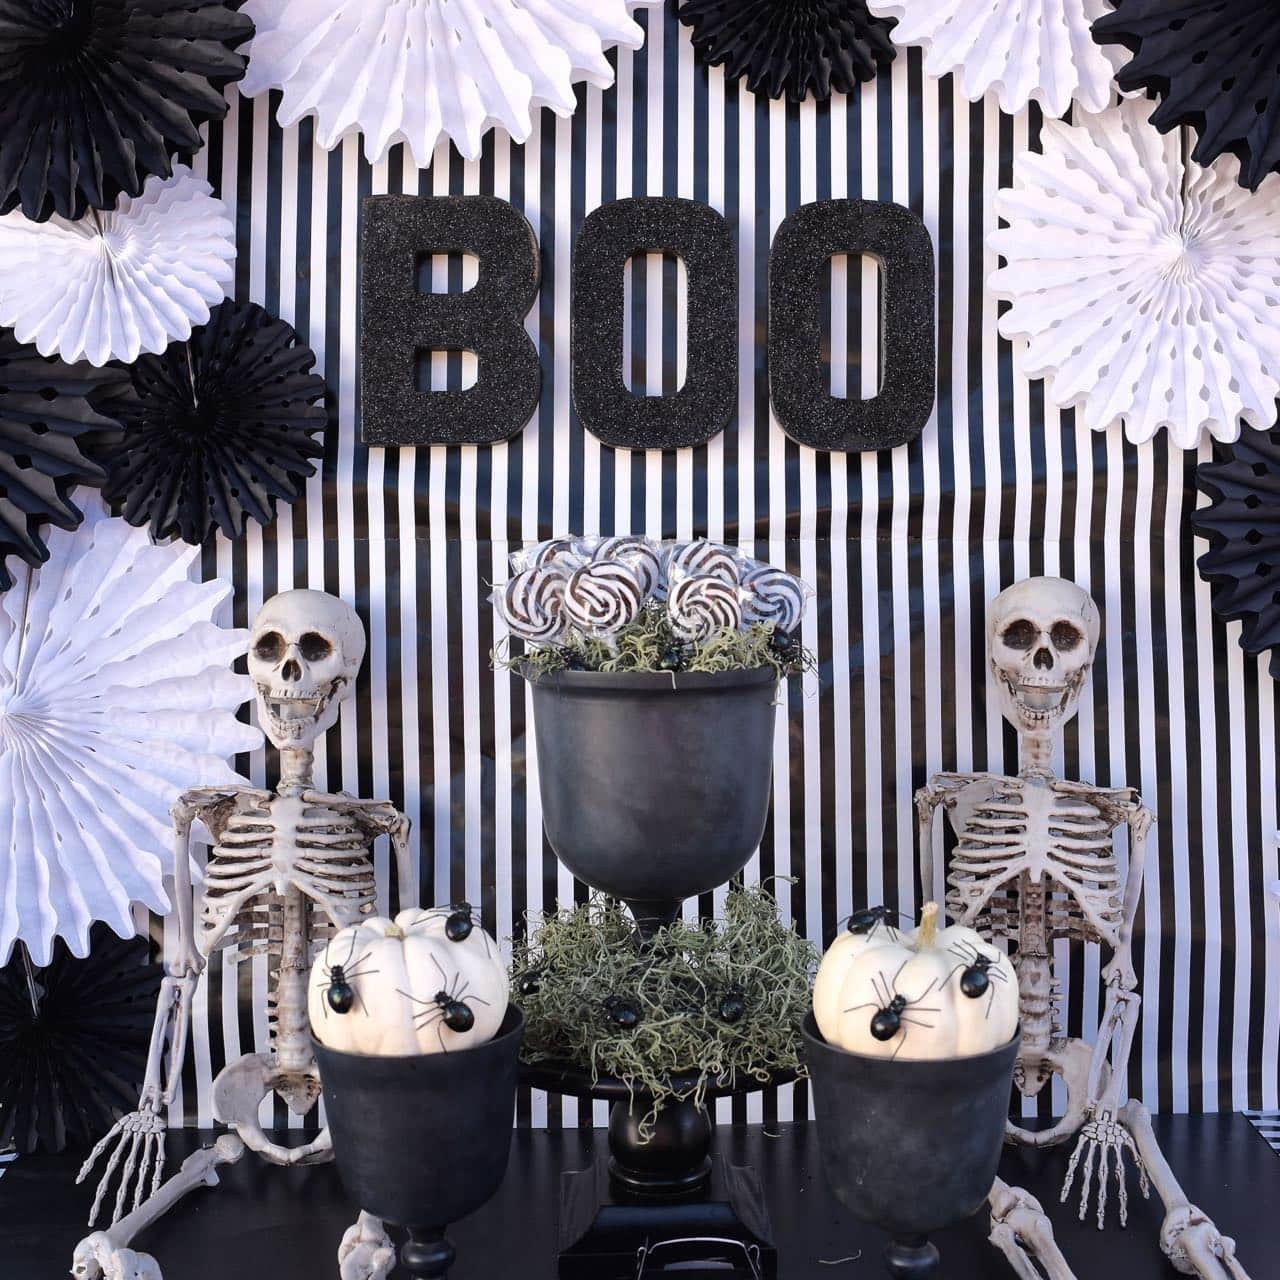 String Lights Make Your Own Black And White Halloween Party - Make Life Lovely